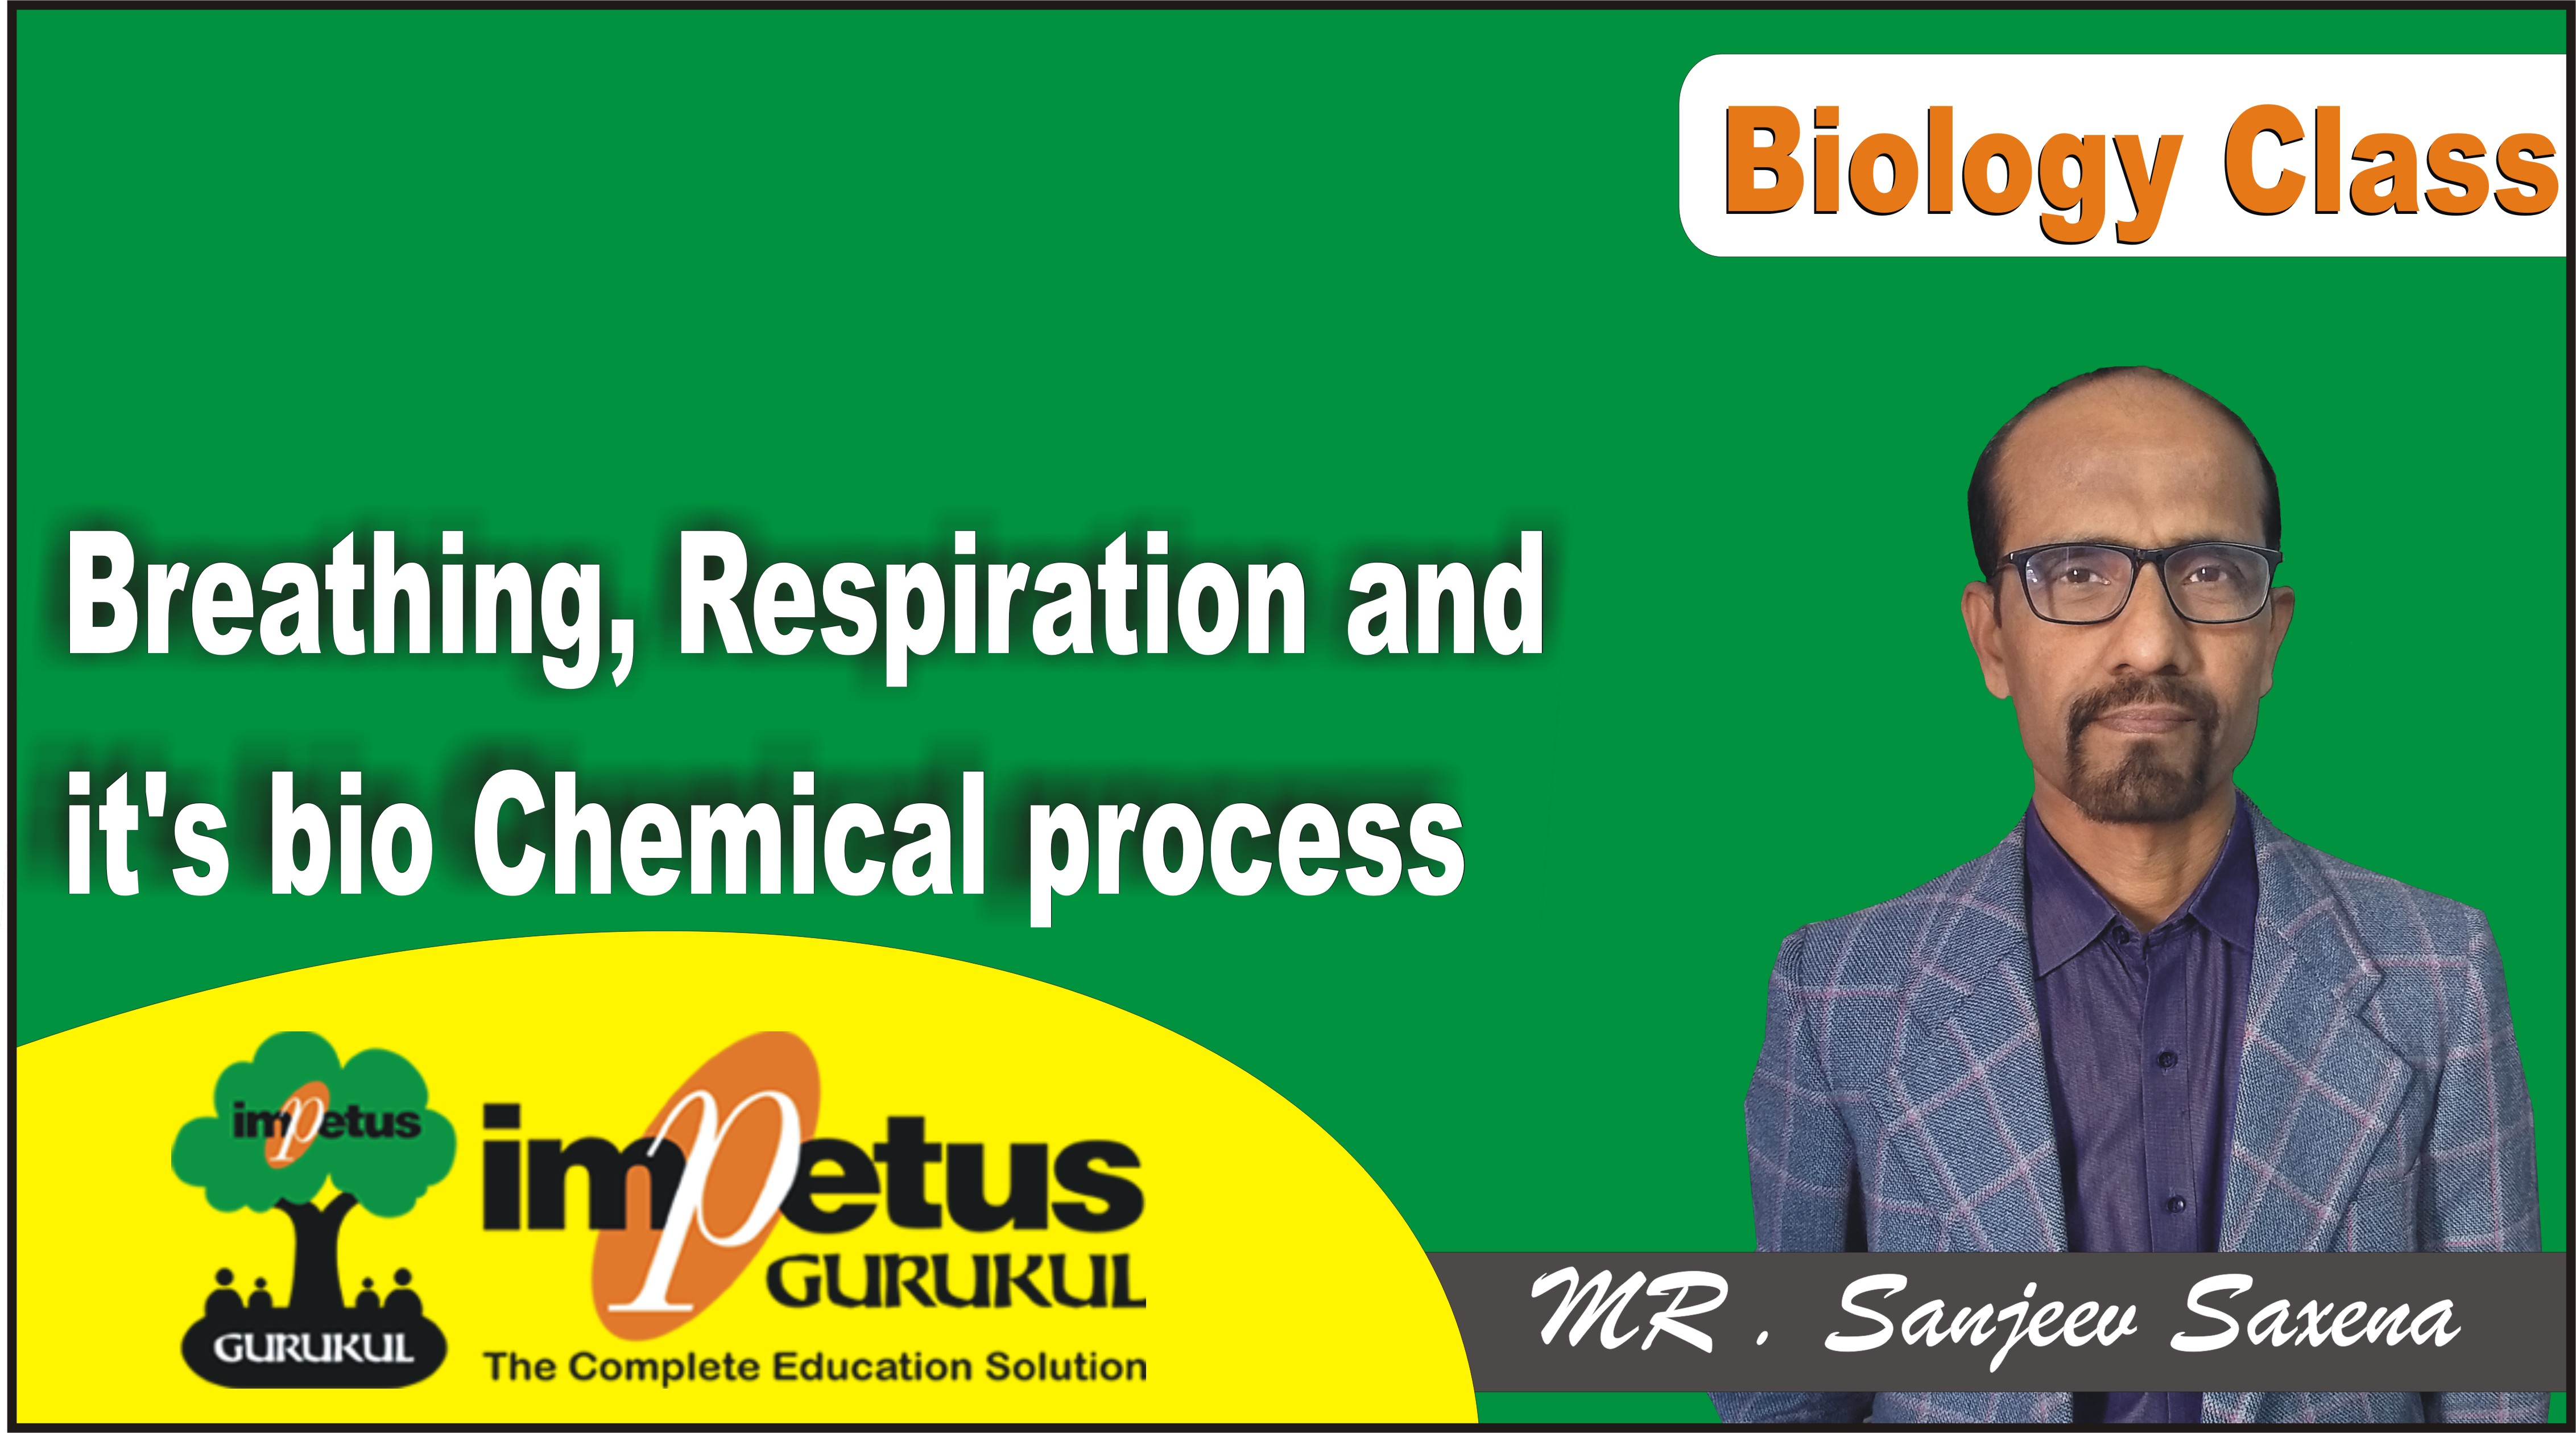 Breathing, Respiration and it's bio Chemical process